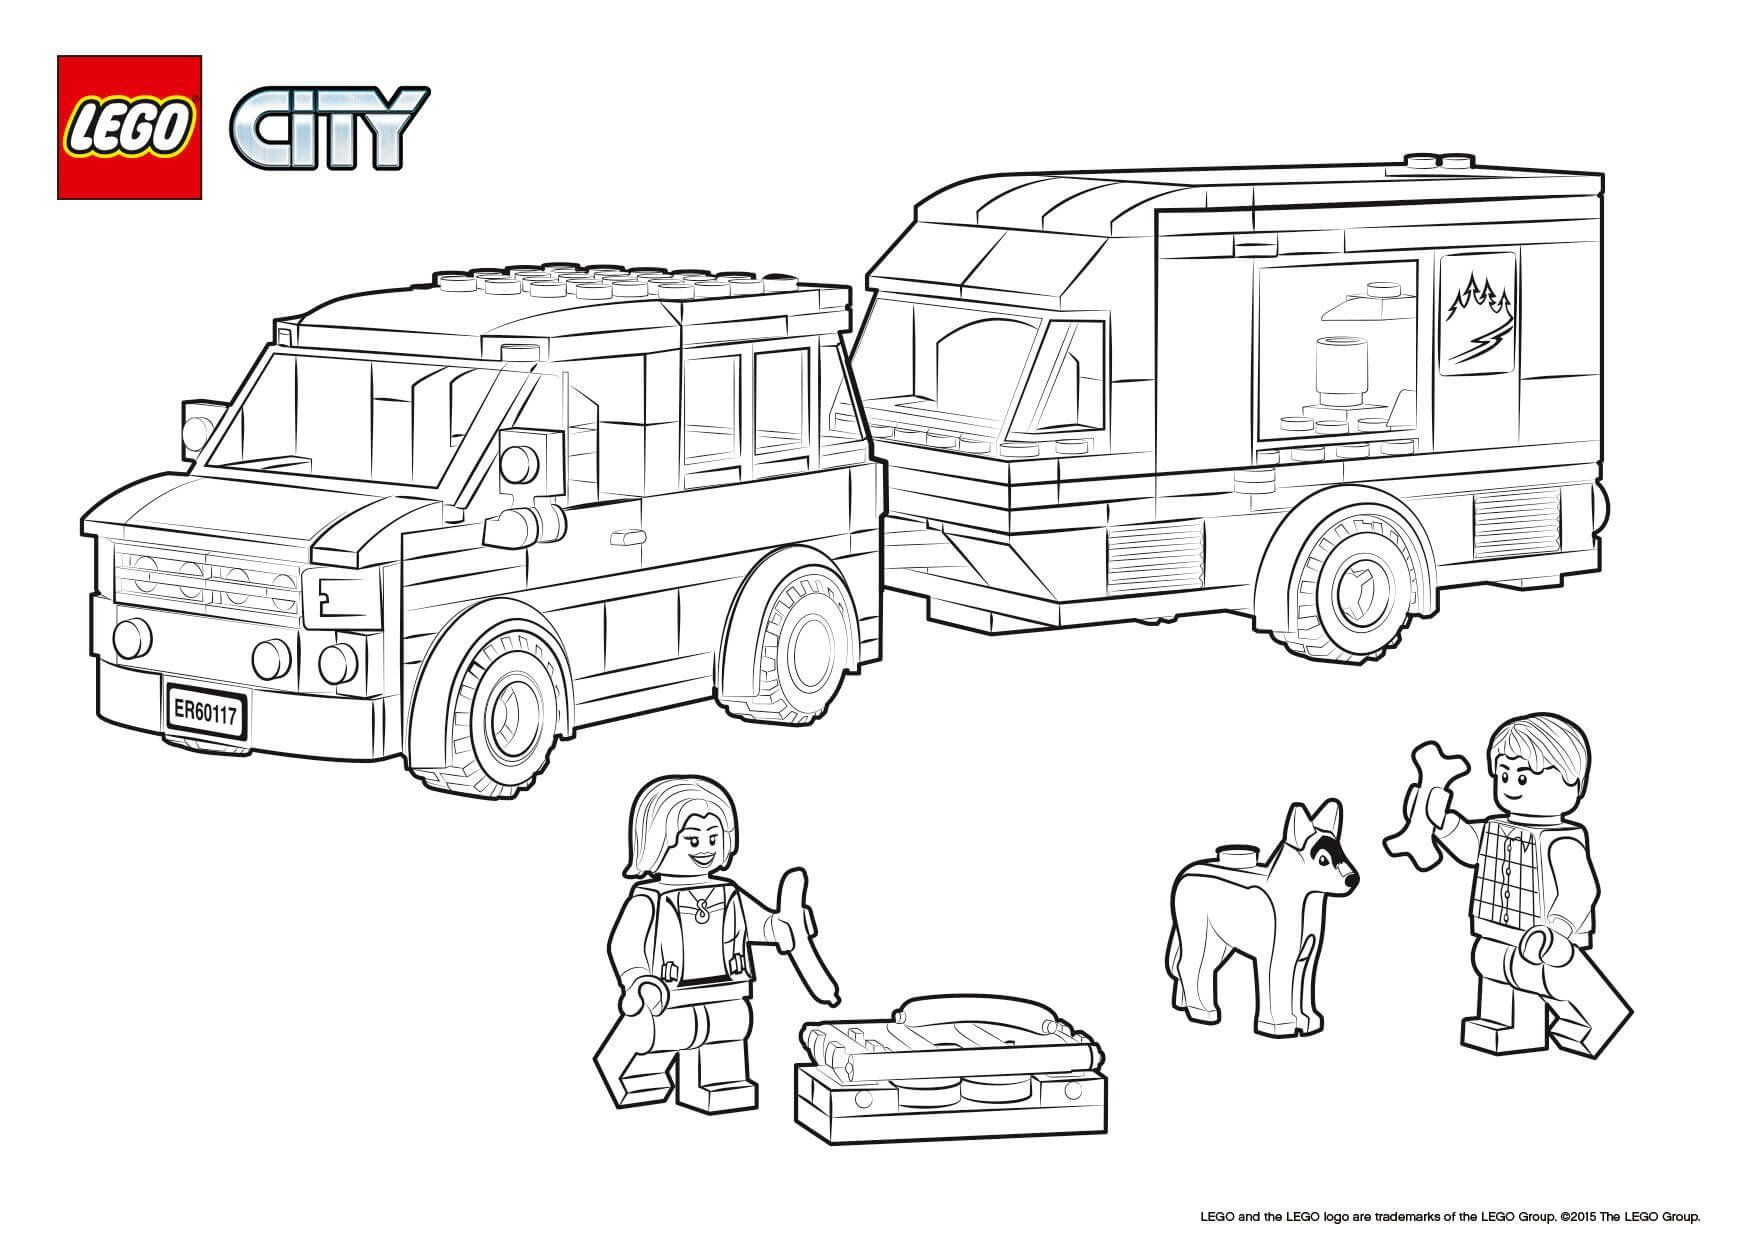 Lego City Coloring Pages Luxury Lego City Coloring Pages Lego Coloring Pages Lego Coloring Mermaid Coloring Pages